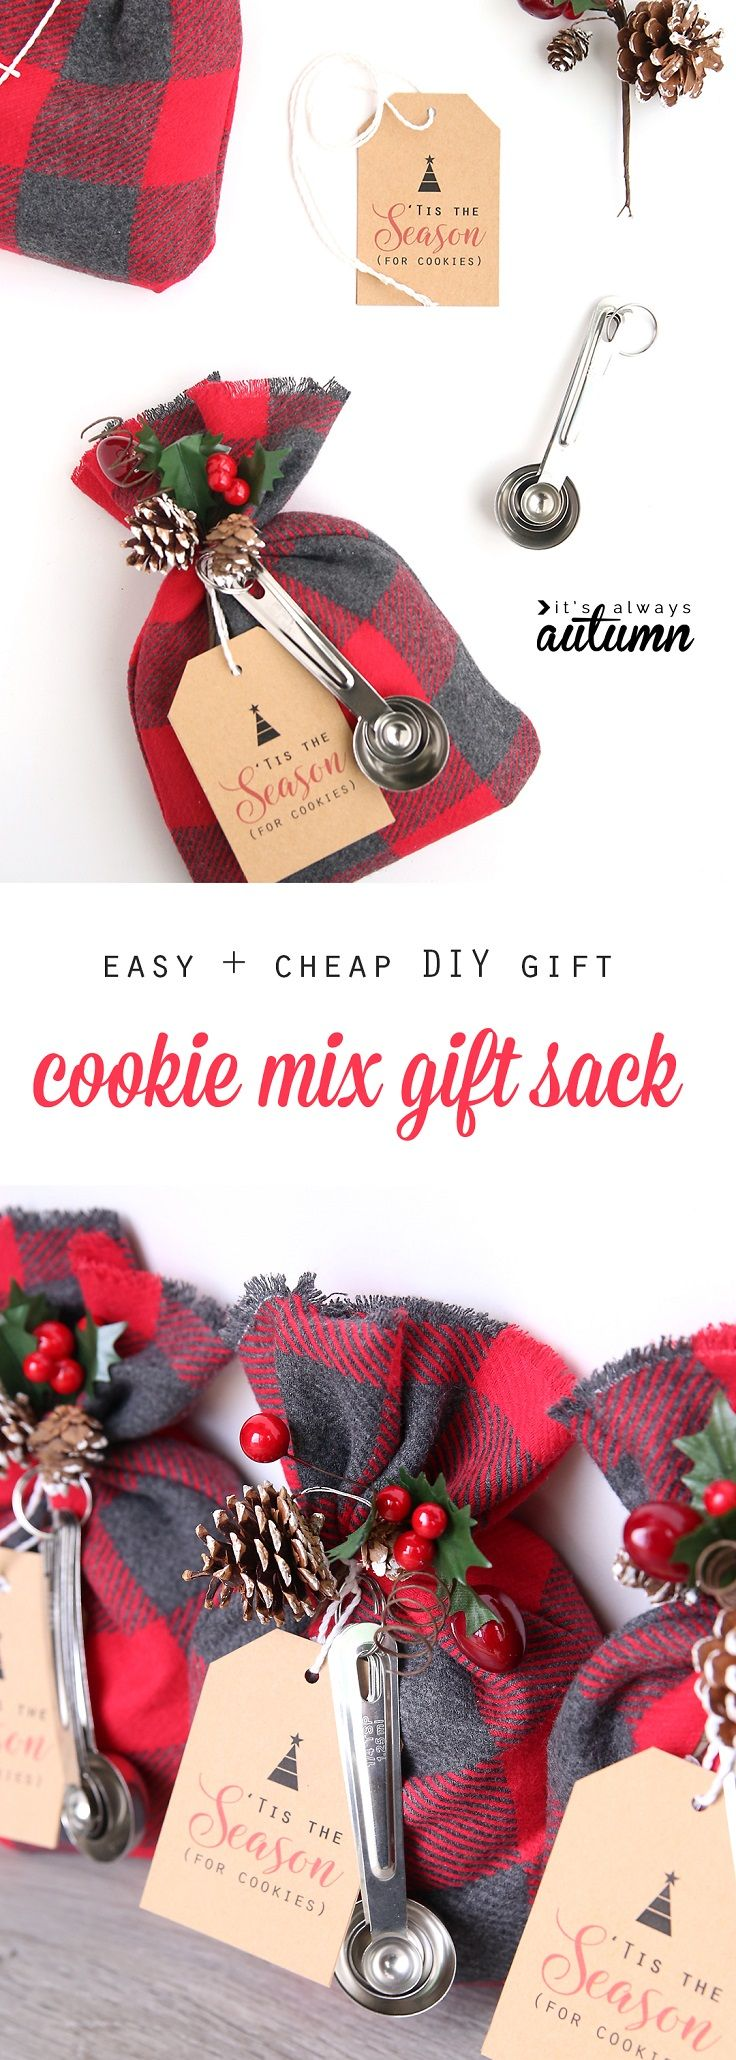 19 Super Fun DIY Christmas Gifts to Surprise Your Loved Ones on A ...